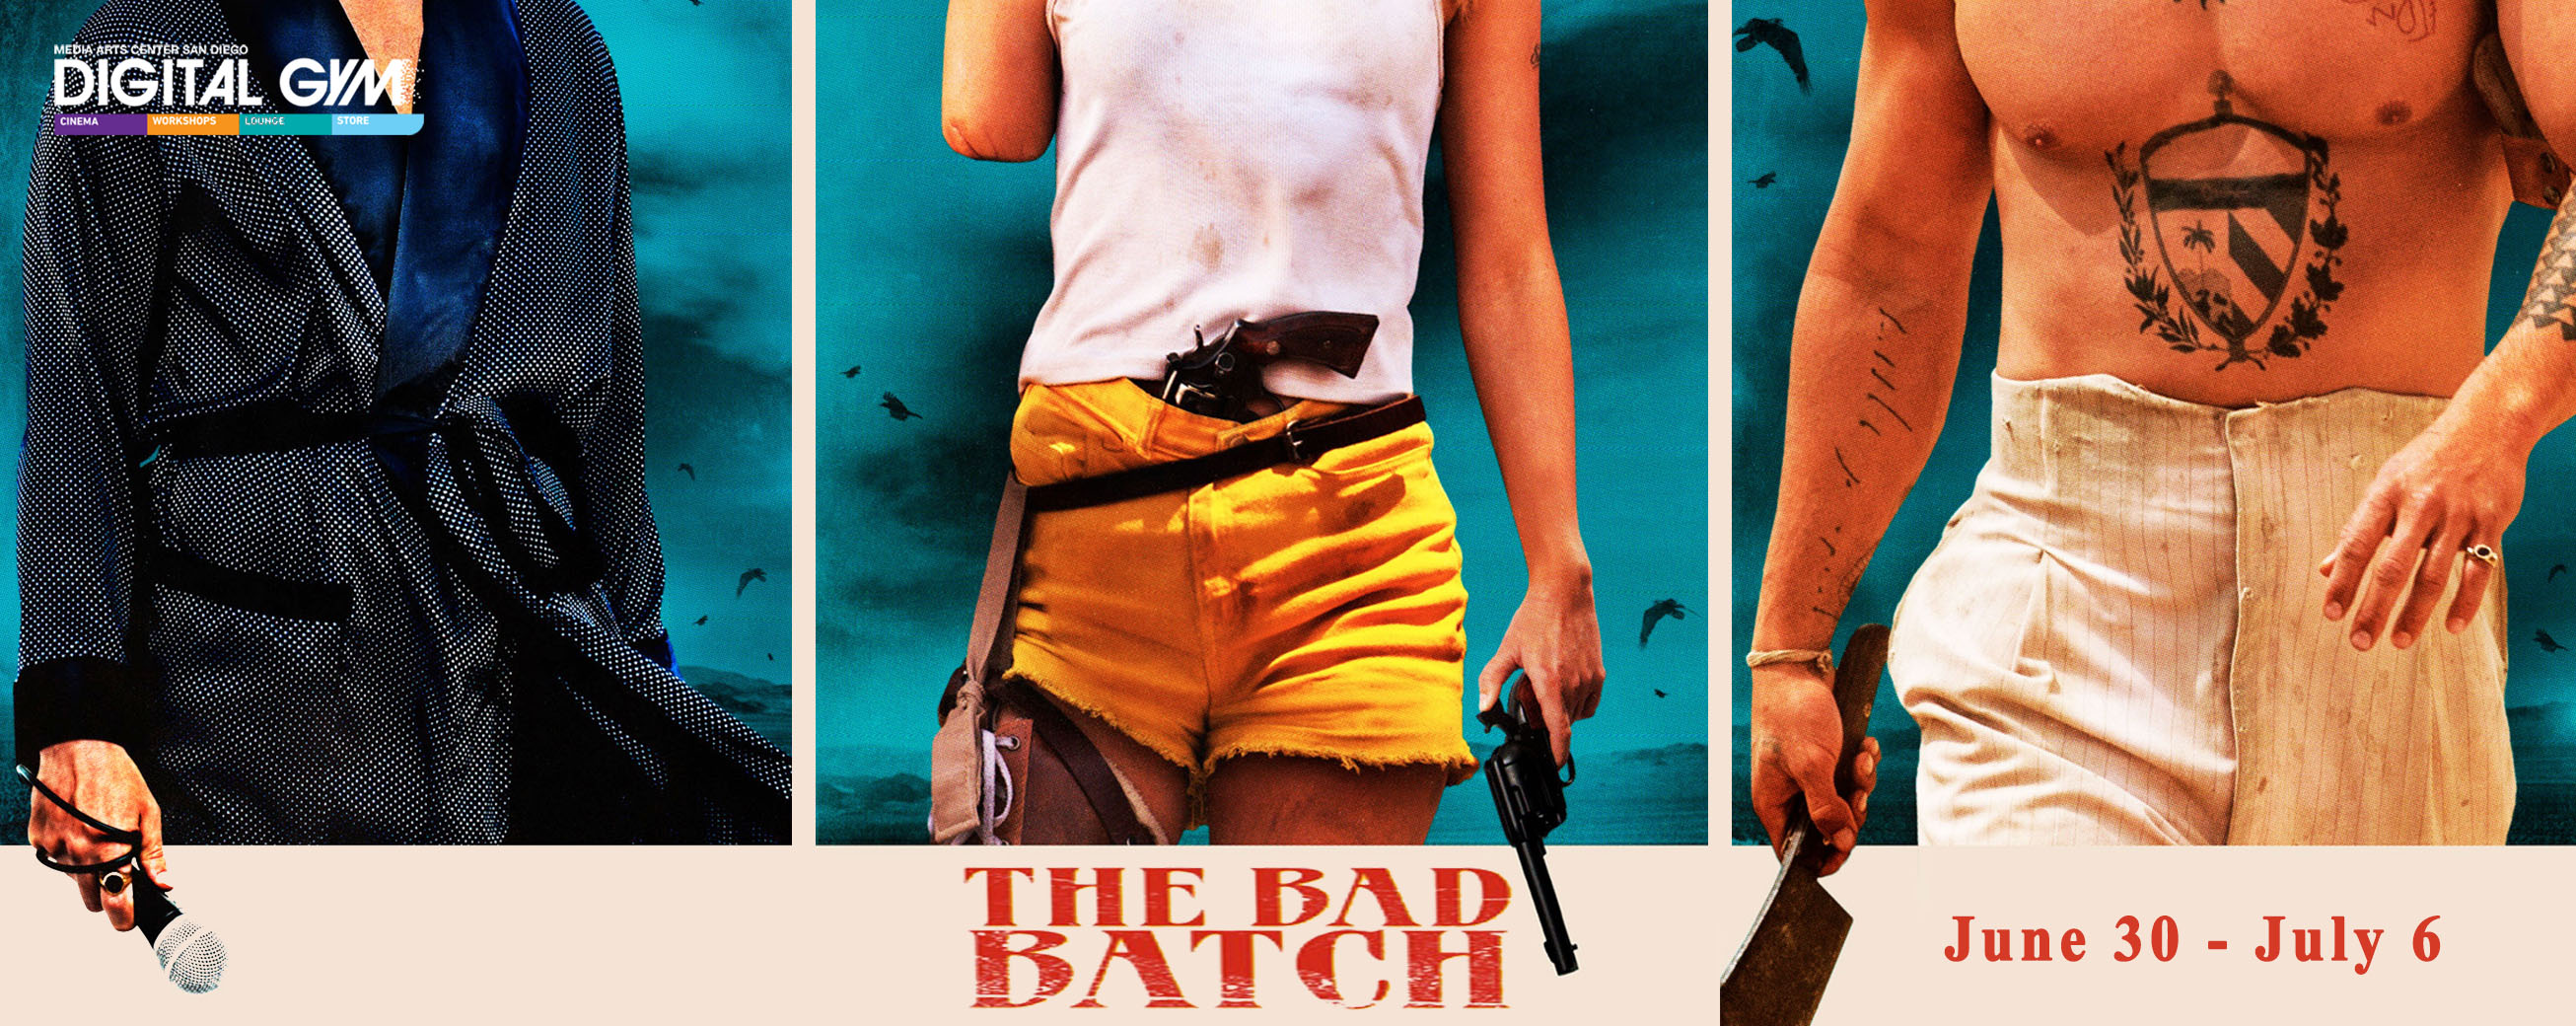 Keanu Reeves in Exhilarating Thriller, The Bad Batch, Now Playing (June 30 – July 6)